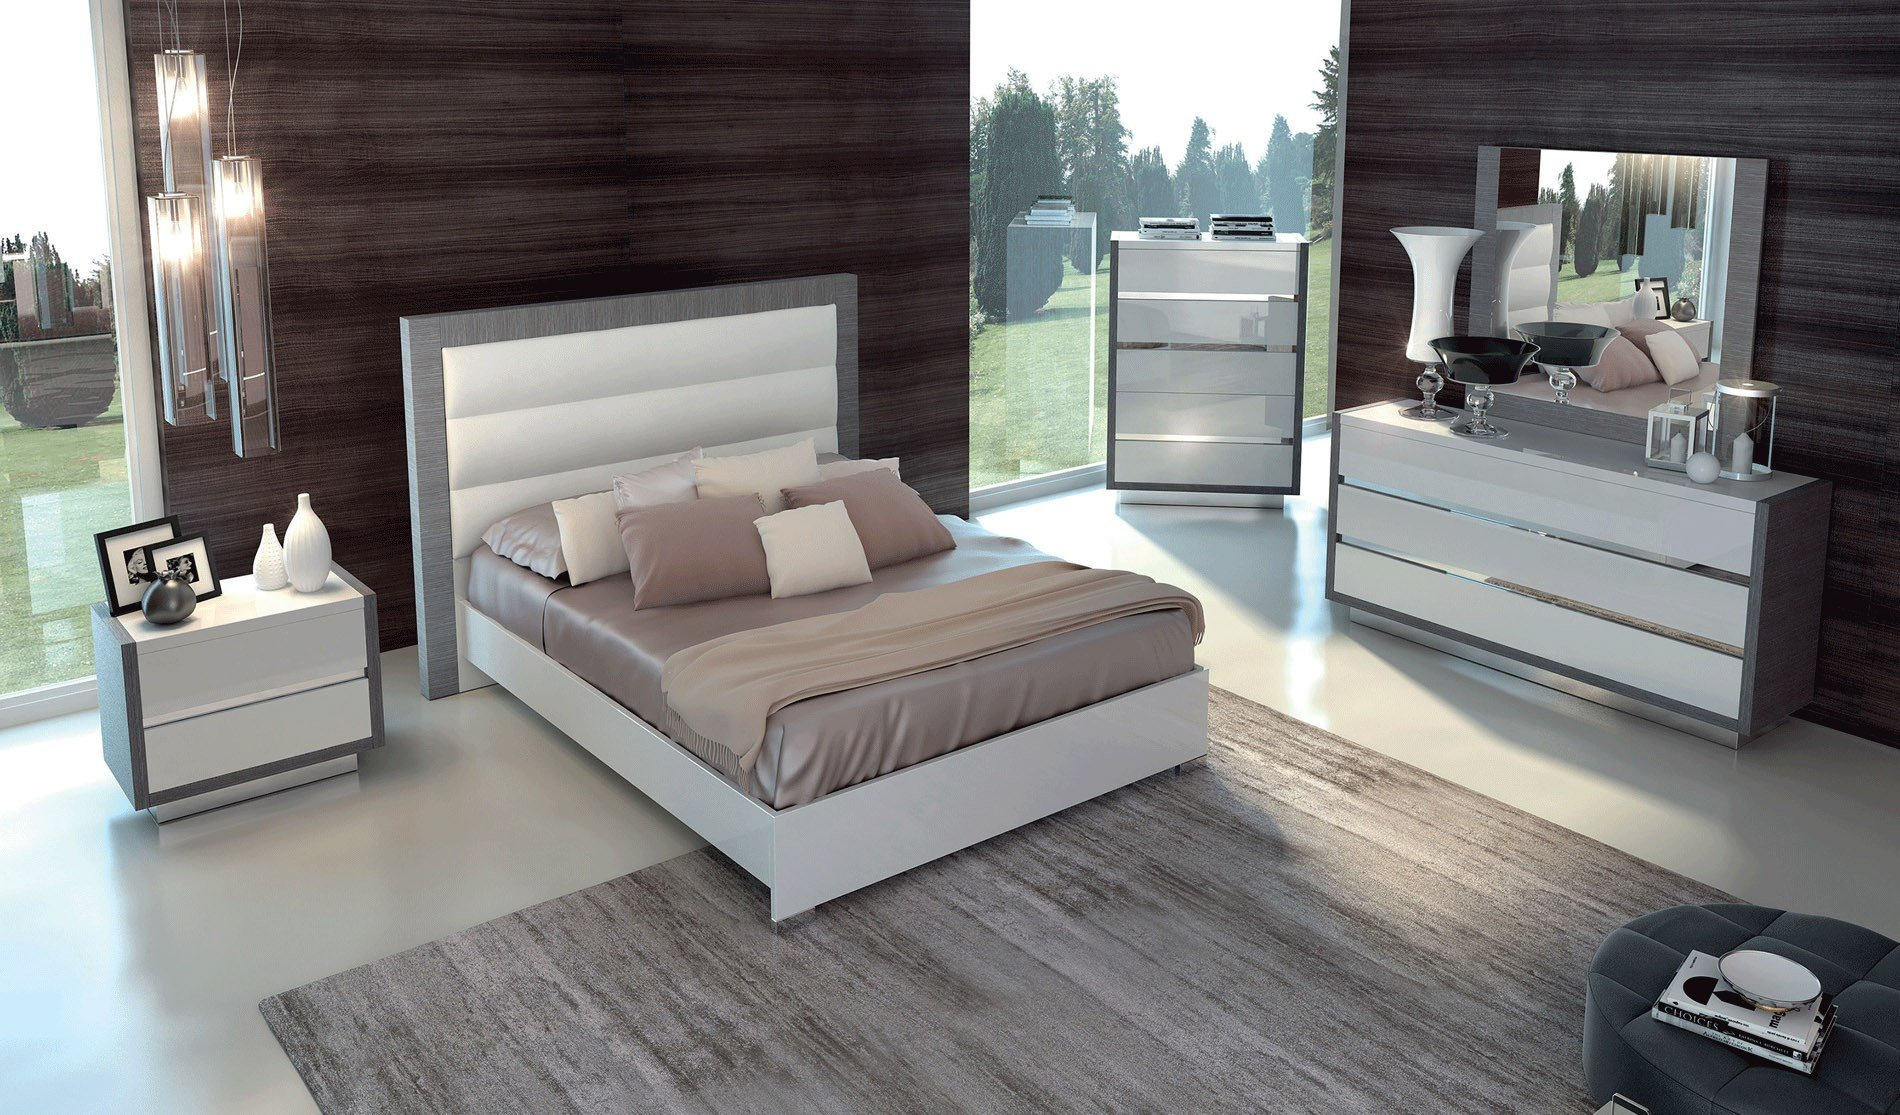 Best Made In Italy Quality Luxury Bedroom Sets Jacksonville Florida Esf Mangano With Pictures